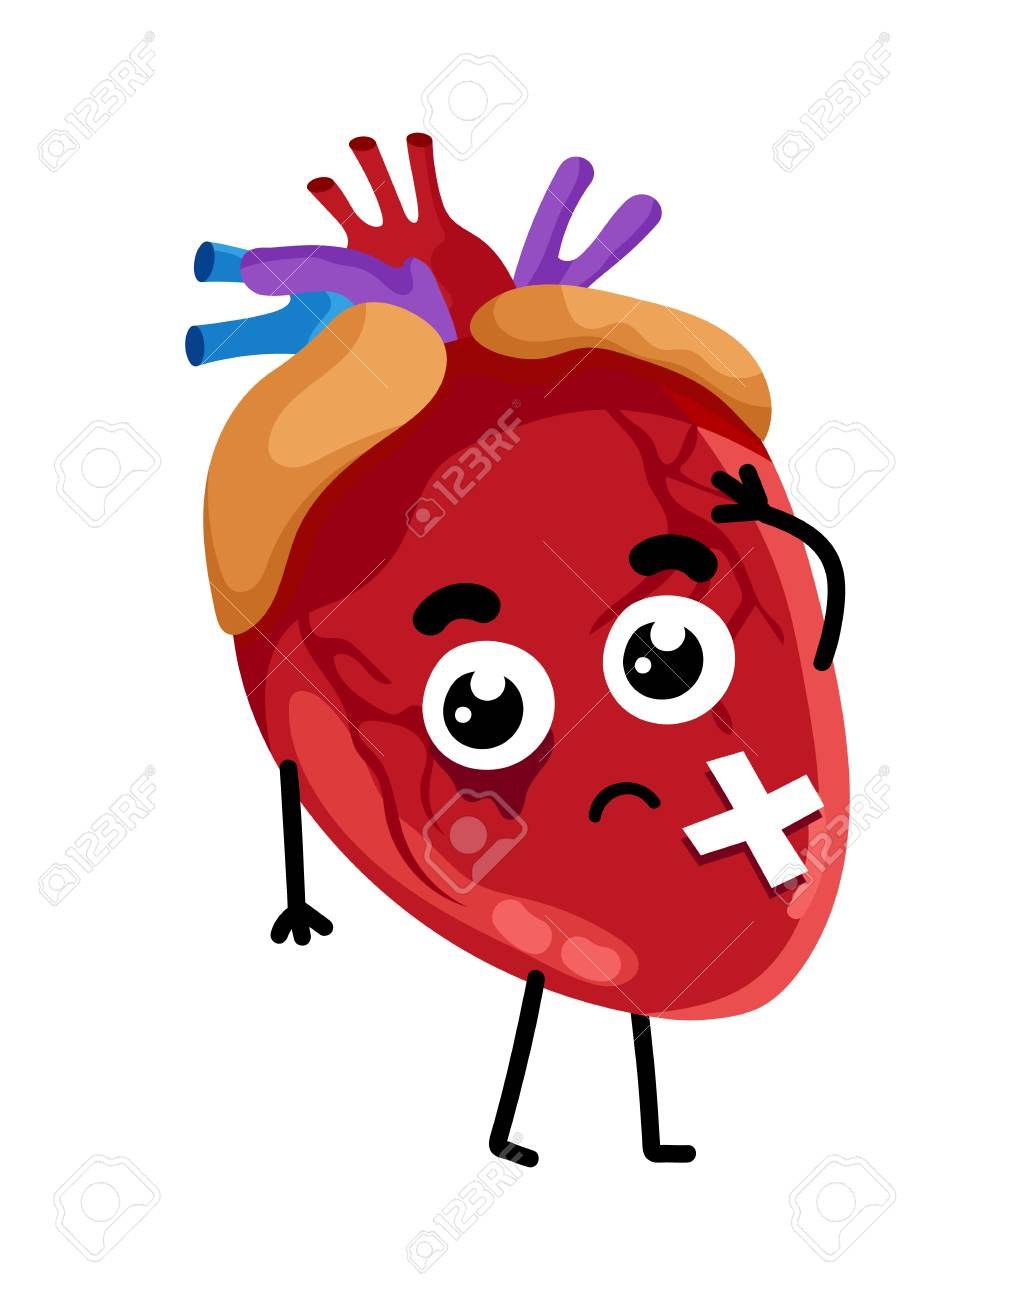 Human sick heart cartoon character. Body anatomy element, health...